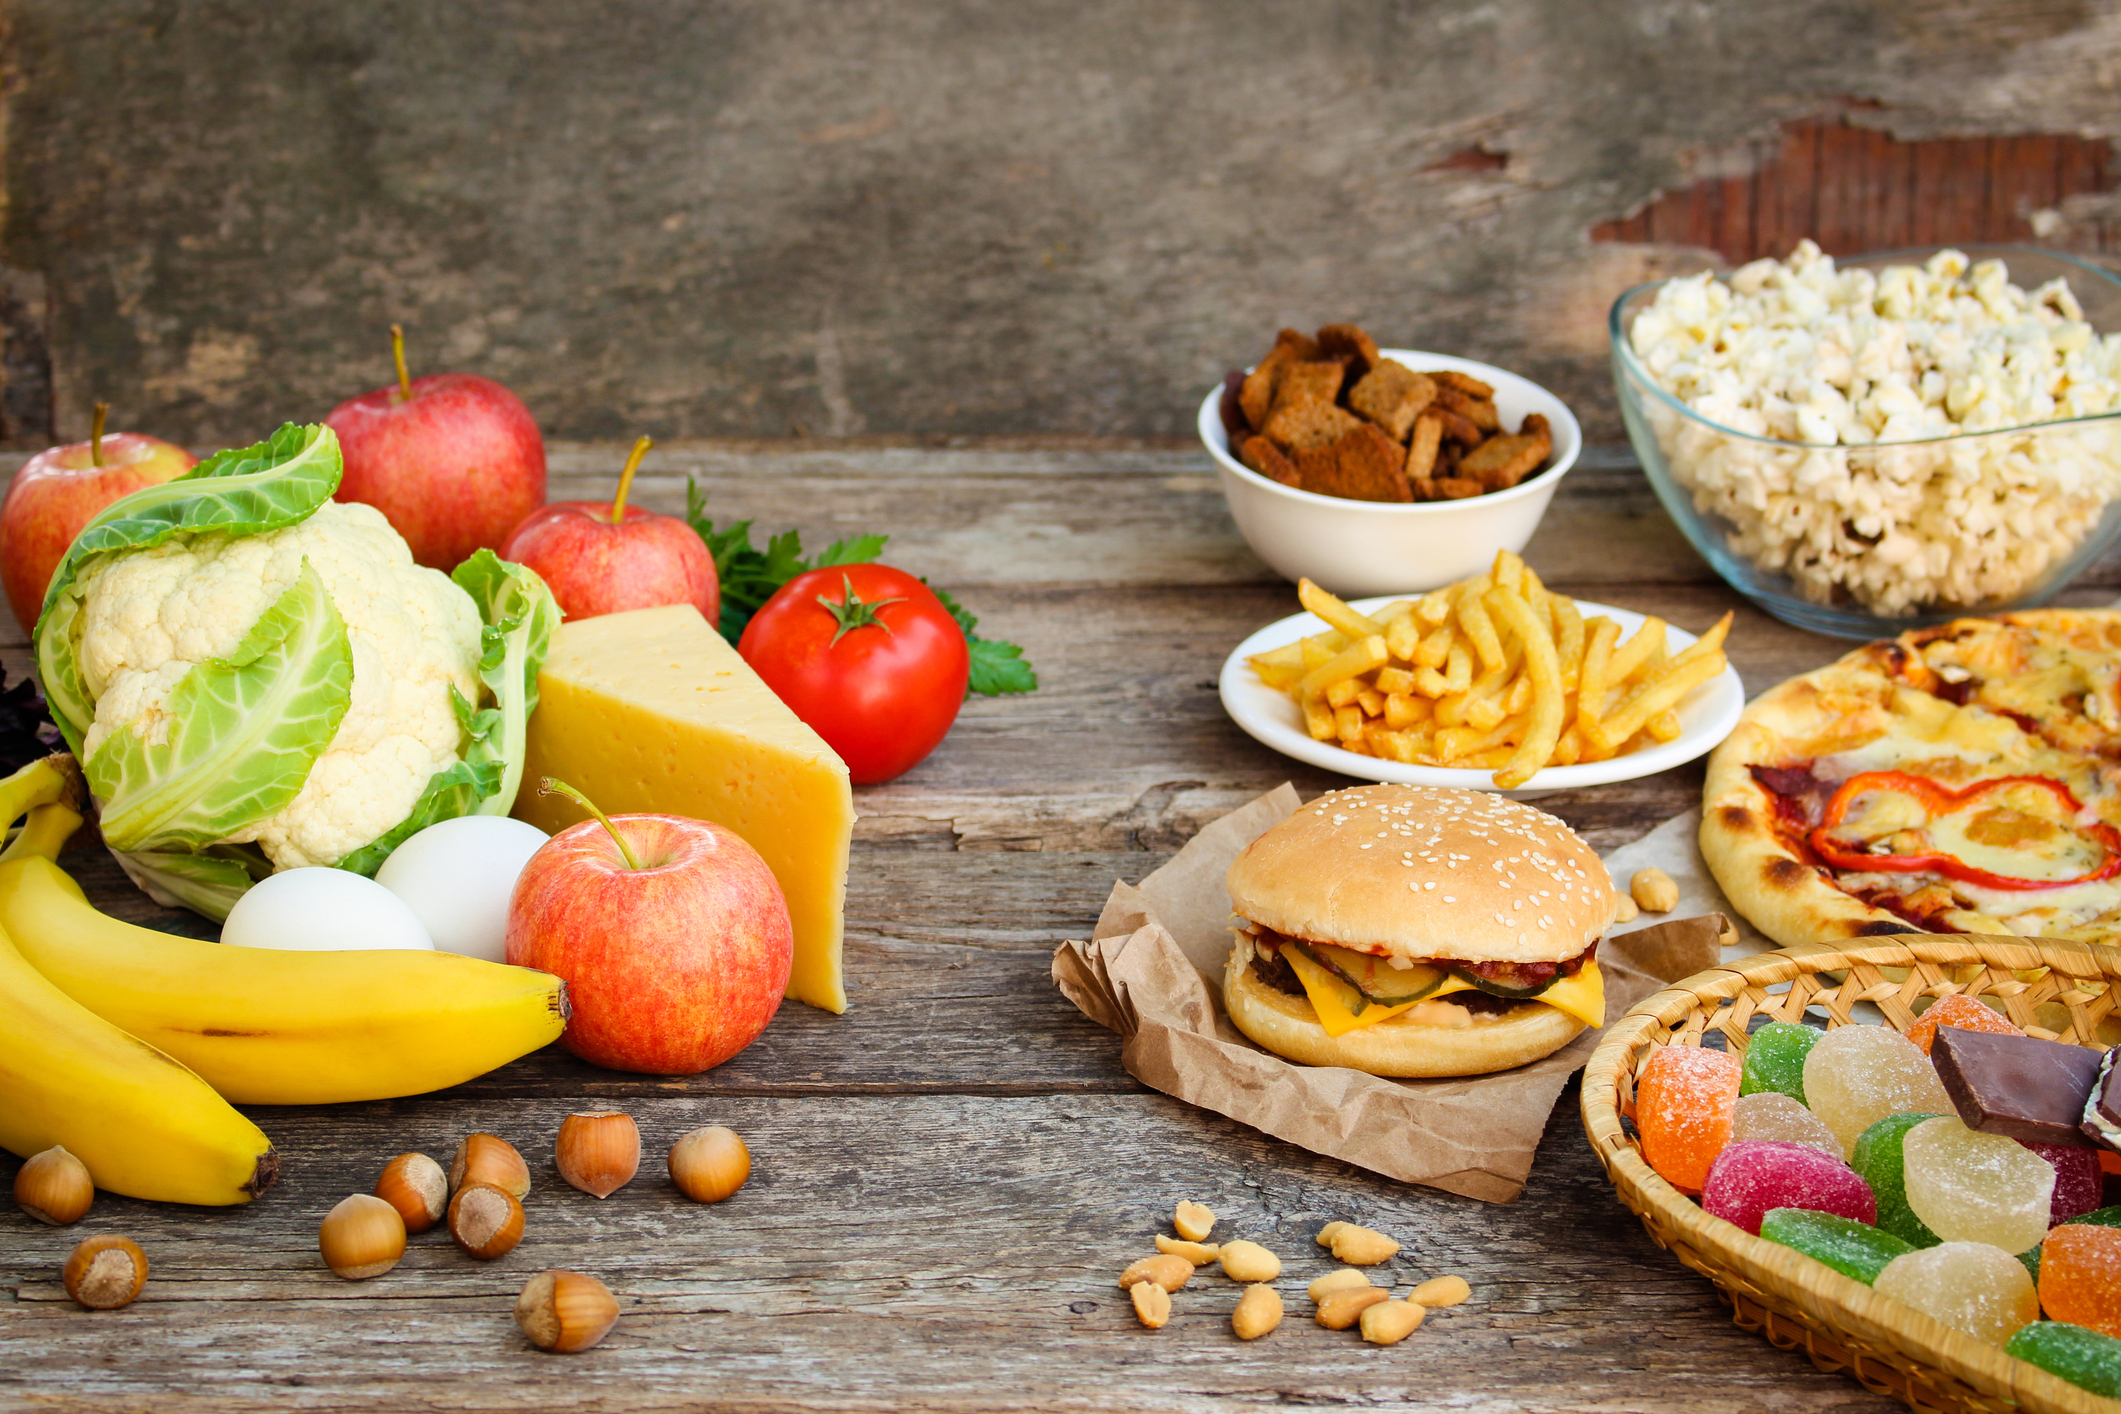 A selection of healthy and unhealthy foods